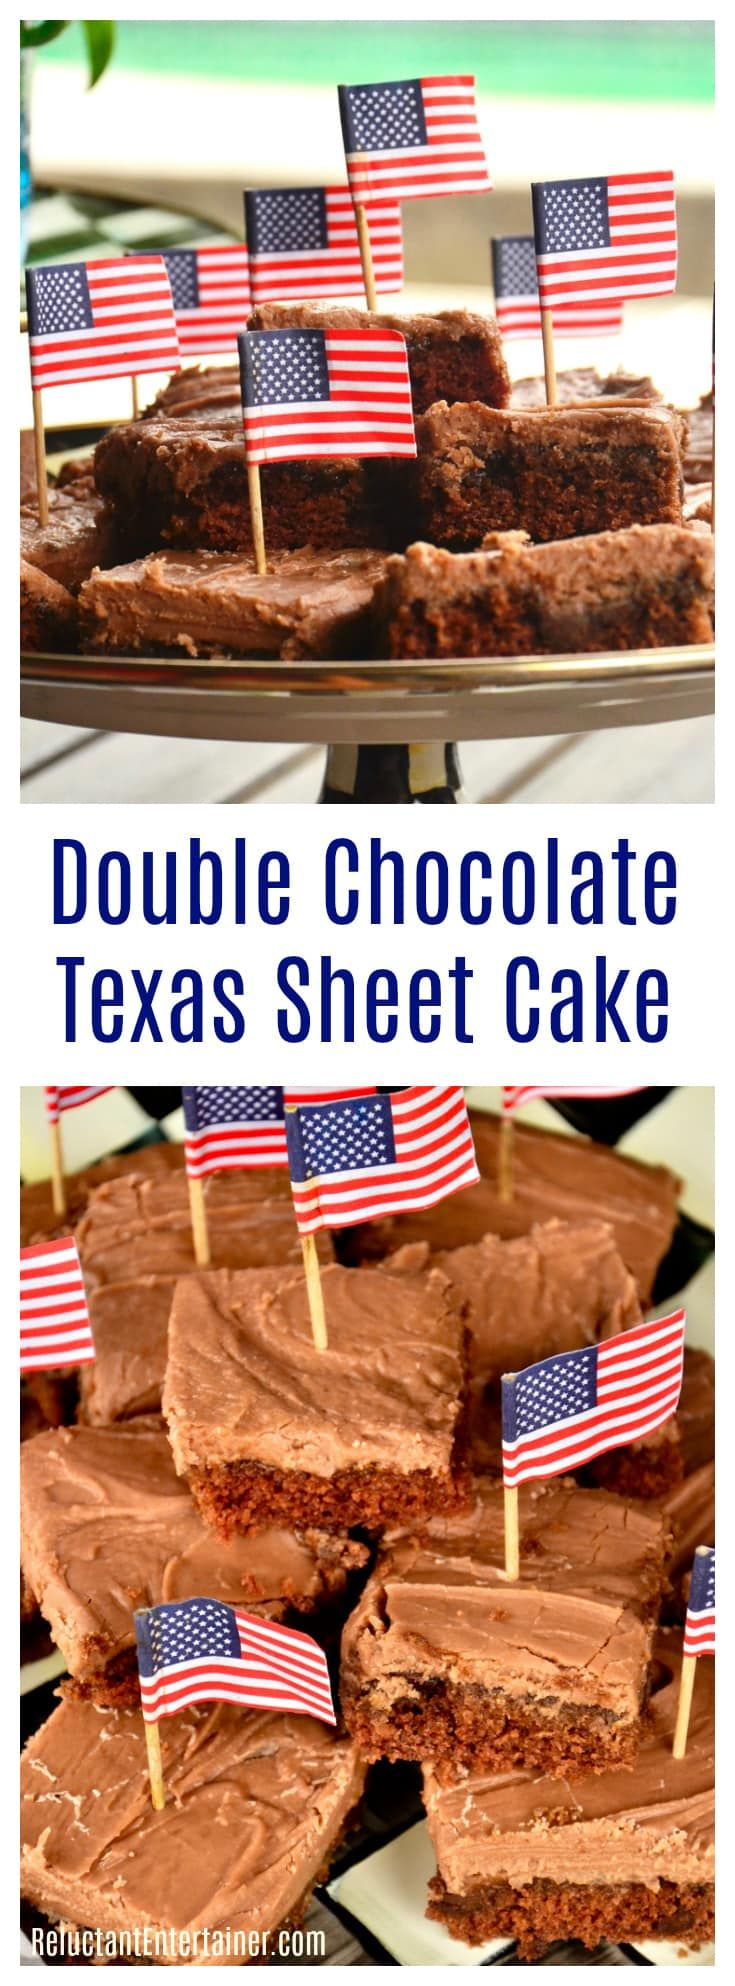 Double Chocolate Texas Sheet Cake